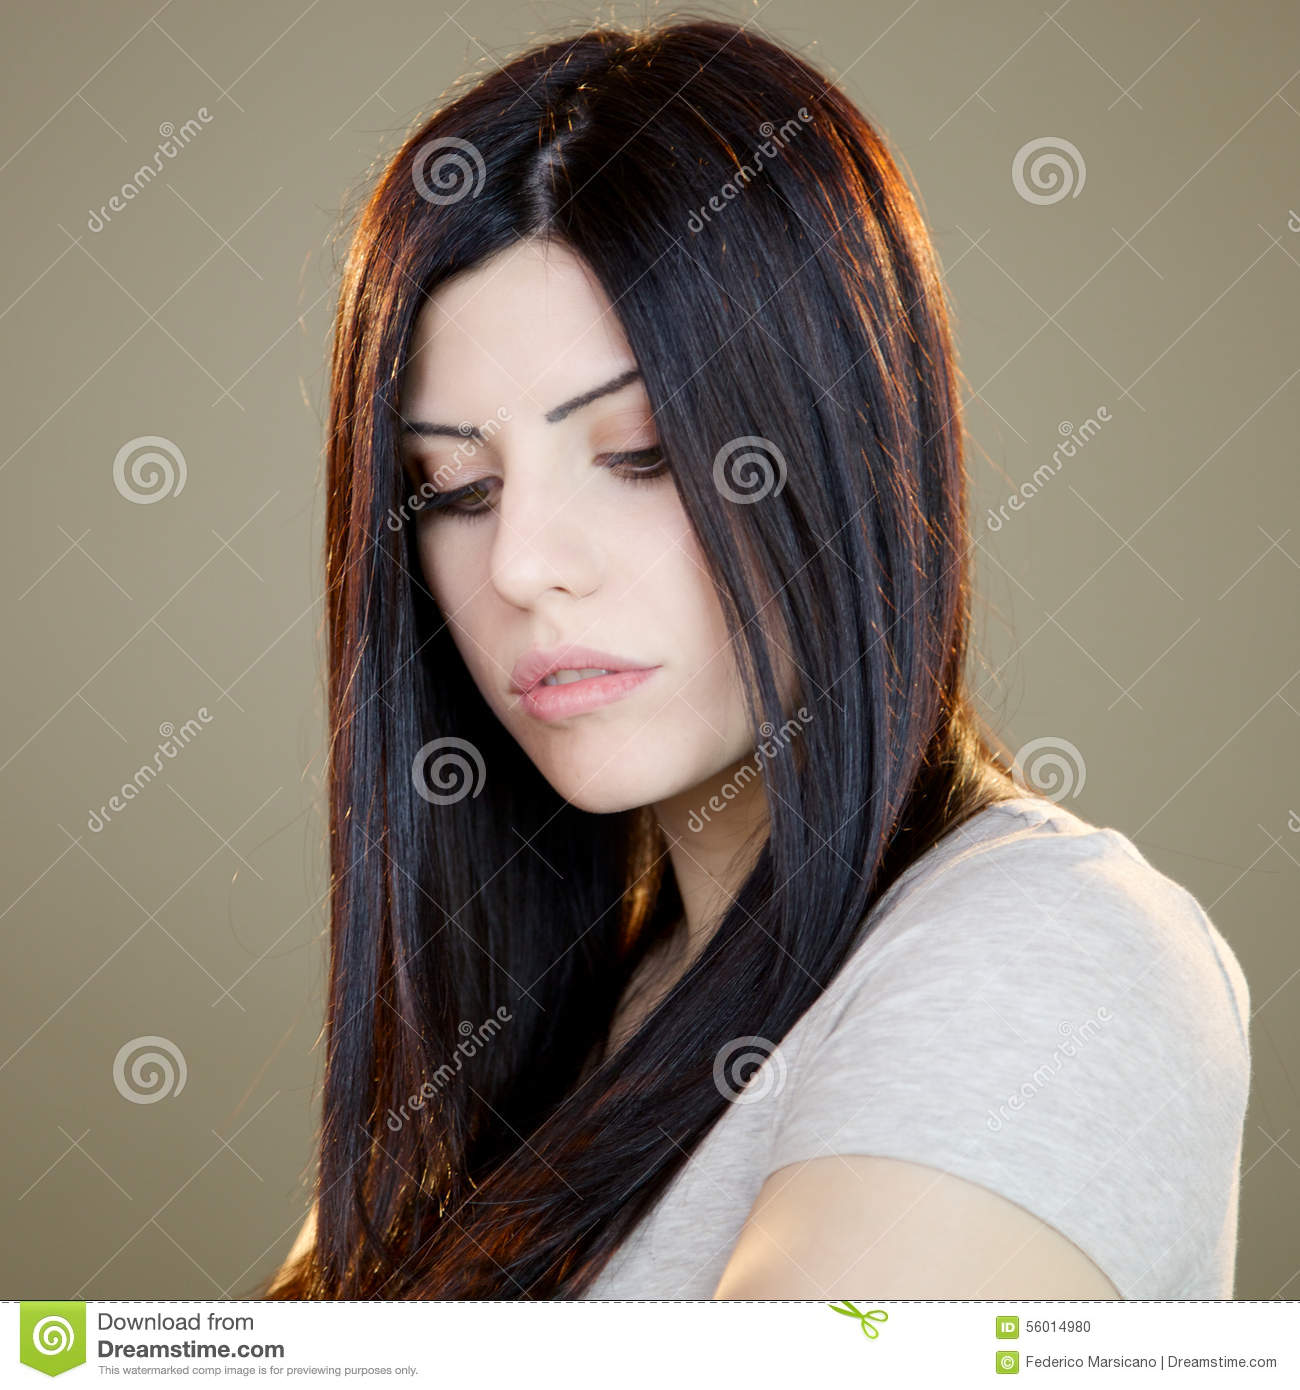 Beautiful woman looking down intense expression